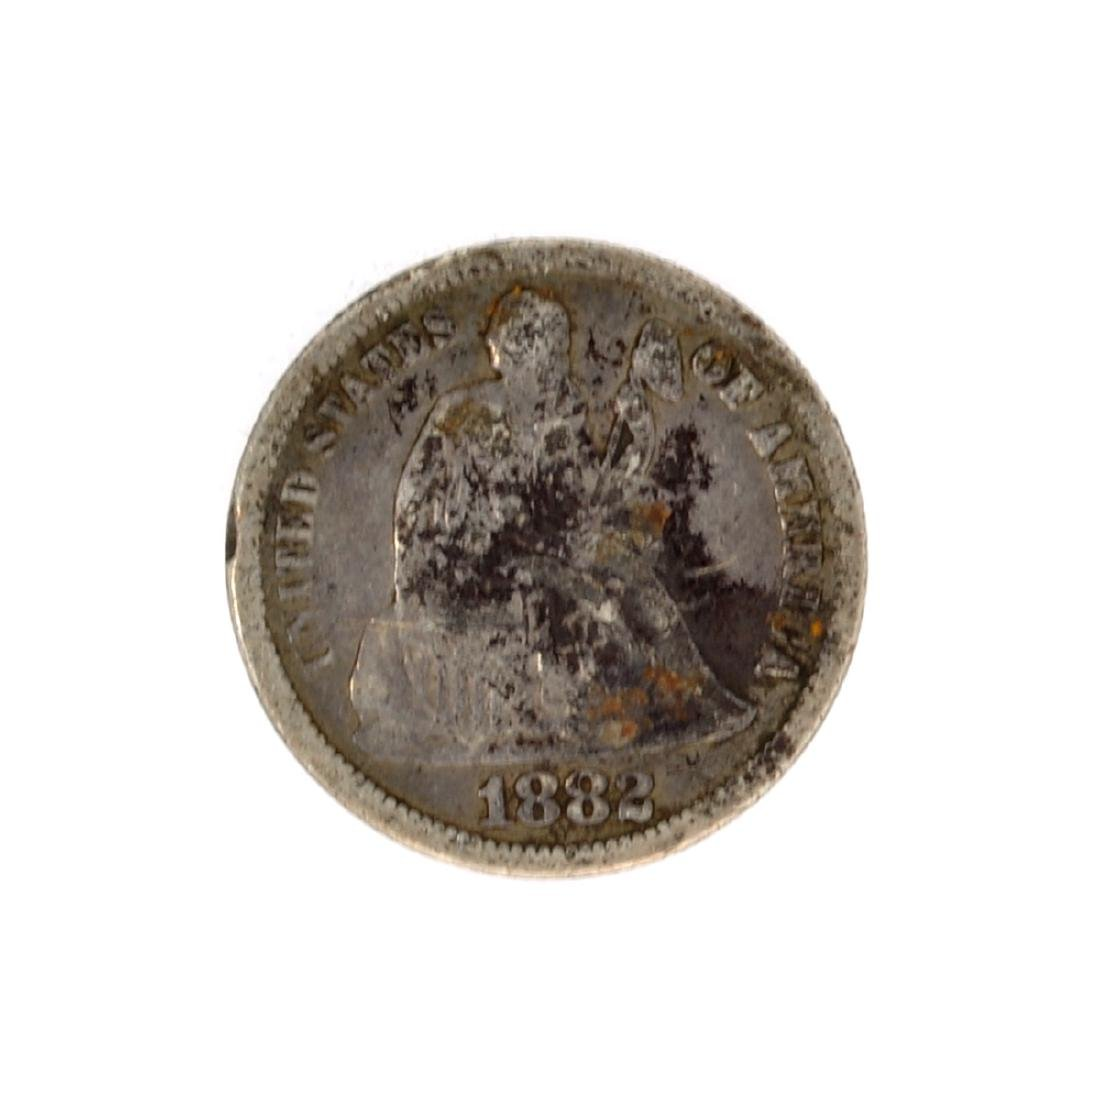 1882 Liberty Seated Dime Coin